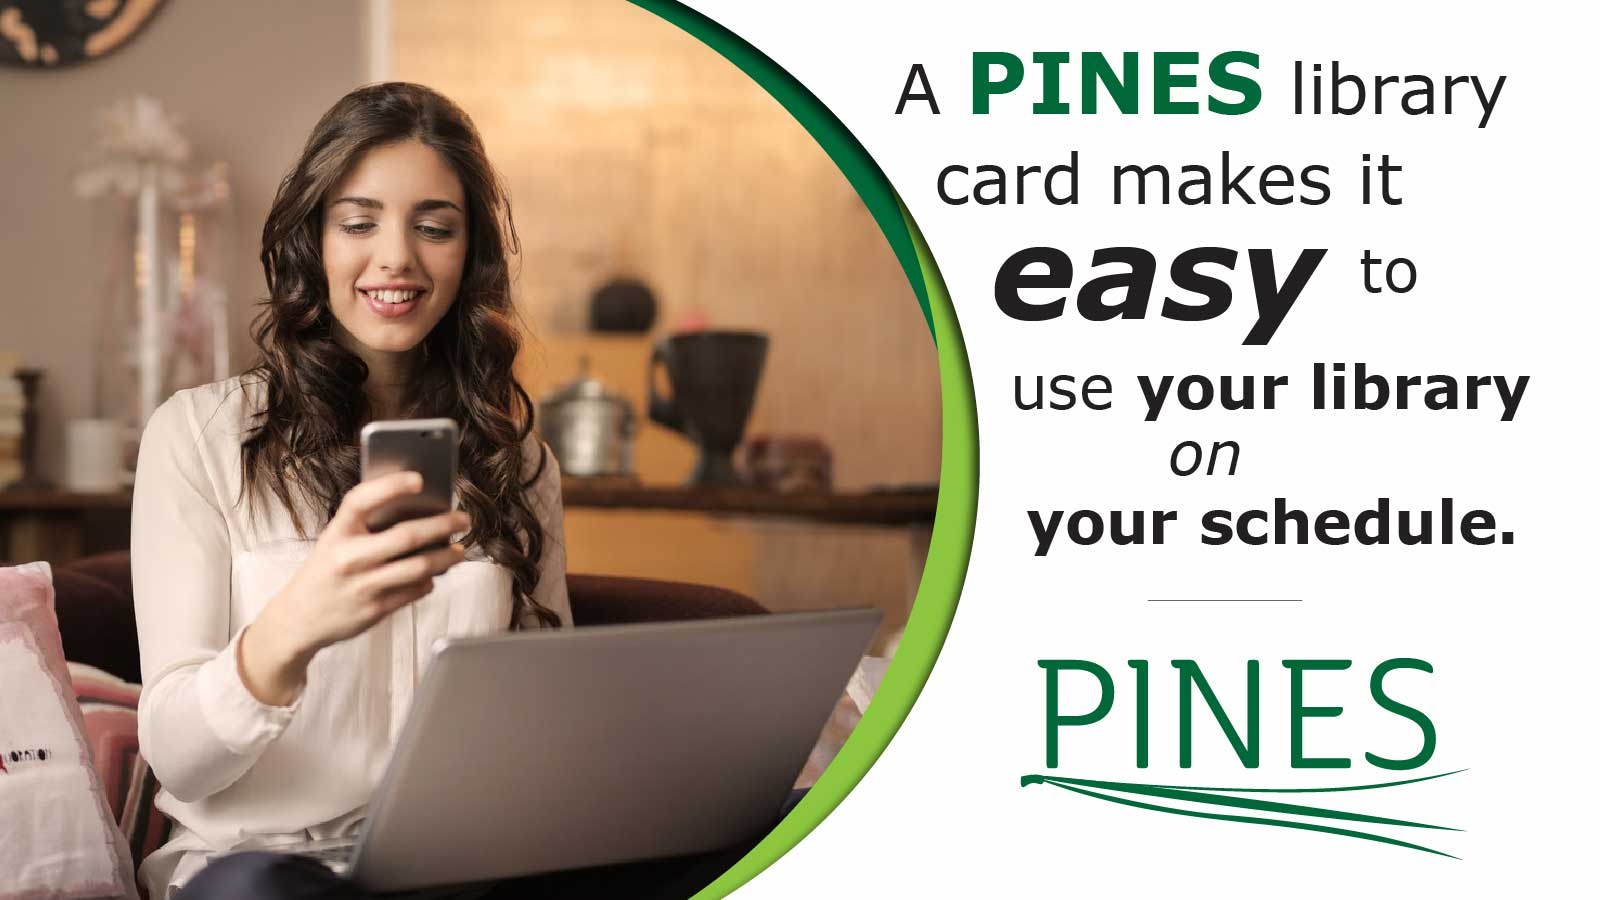 pines card makes it easy